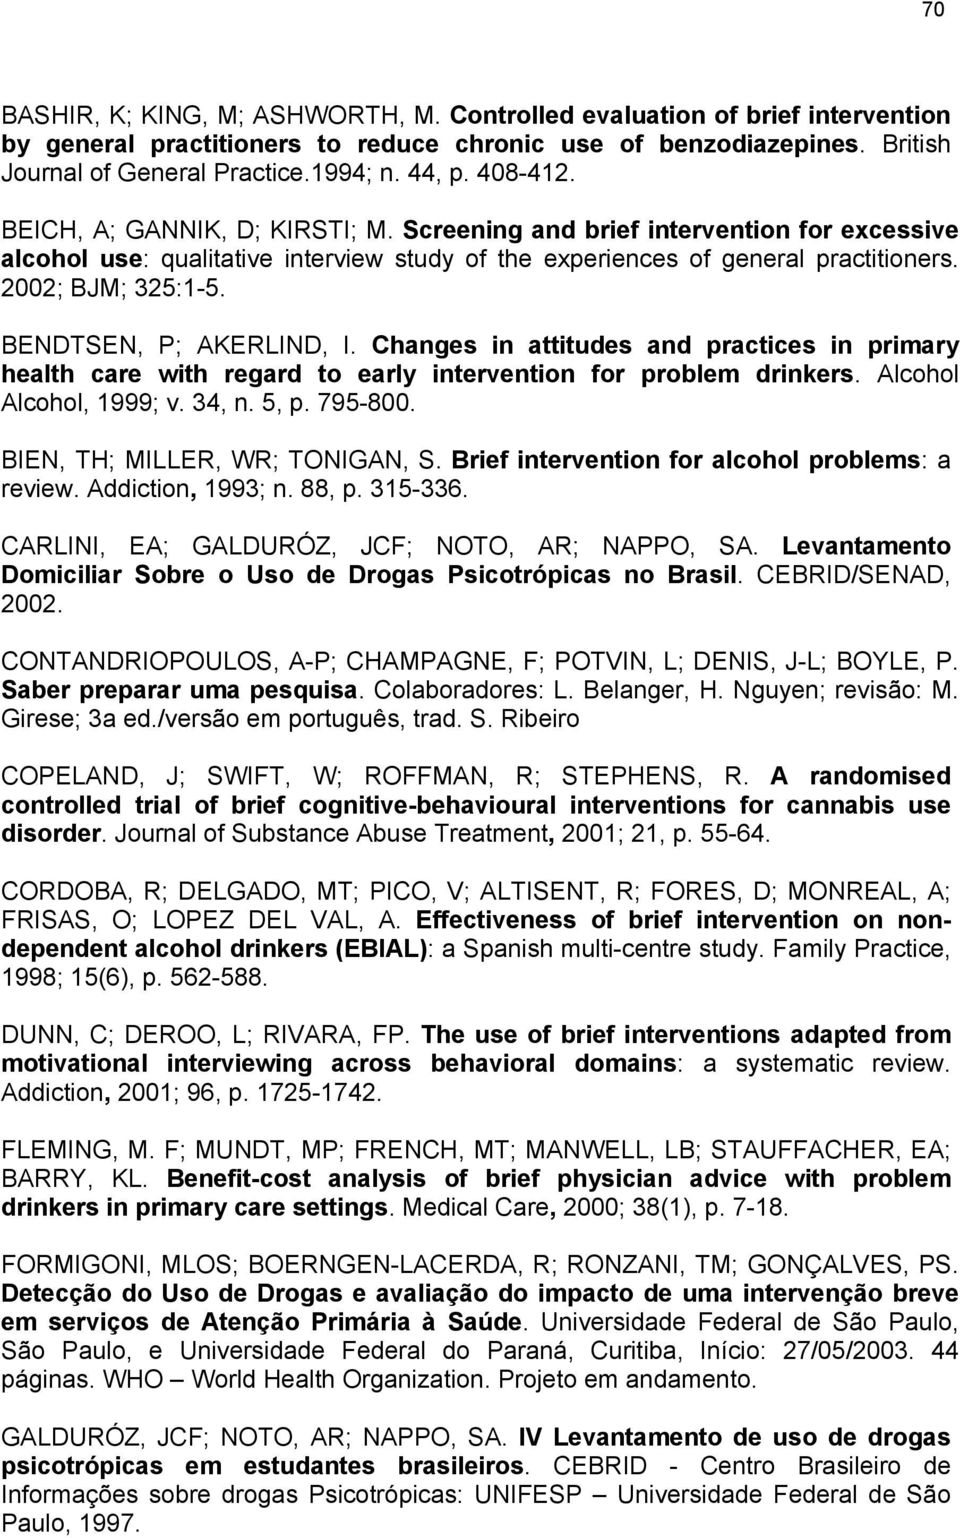 BENDTSEN, P; AKERLIND, I. Changes in attitudes and practices in primary health care with regard to early intervention for problem drinkers. Alcohol Alcohol, 1999; v. 34, n. 5, p. 795-800.